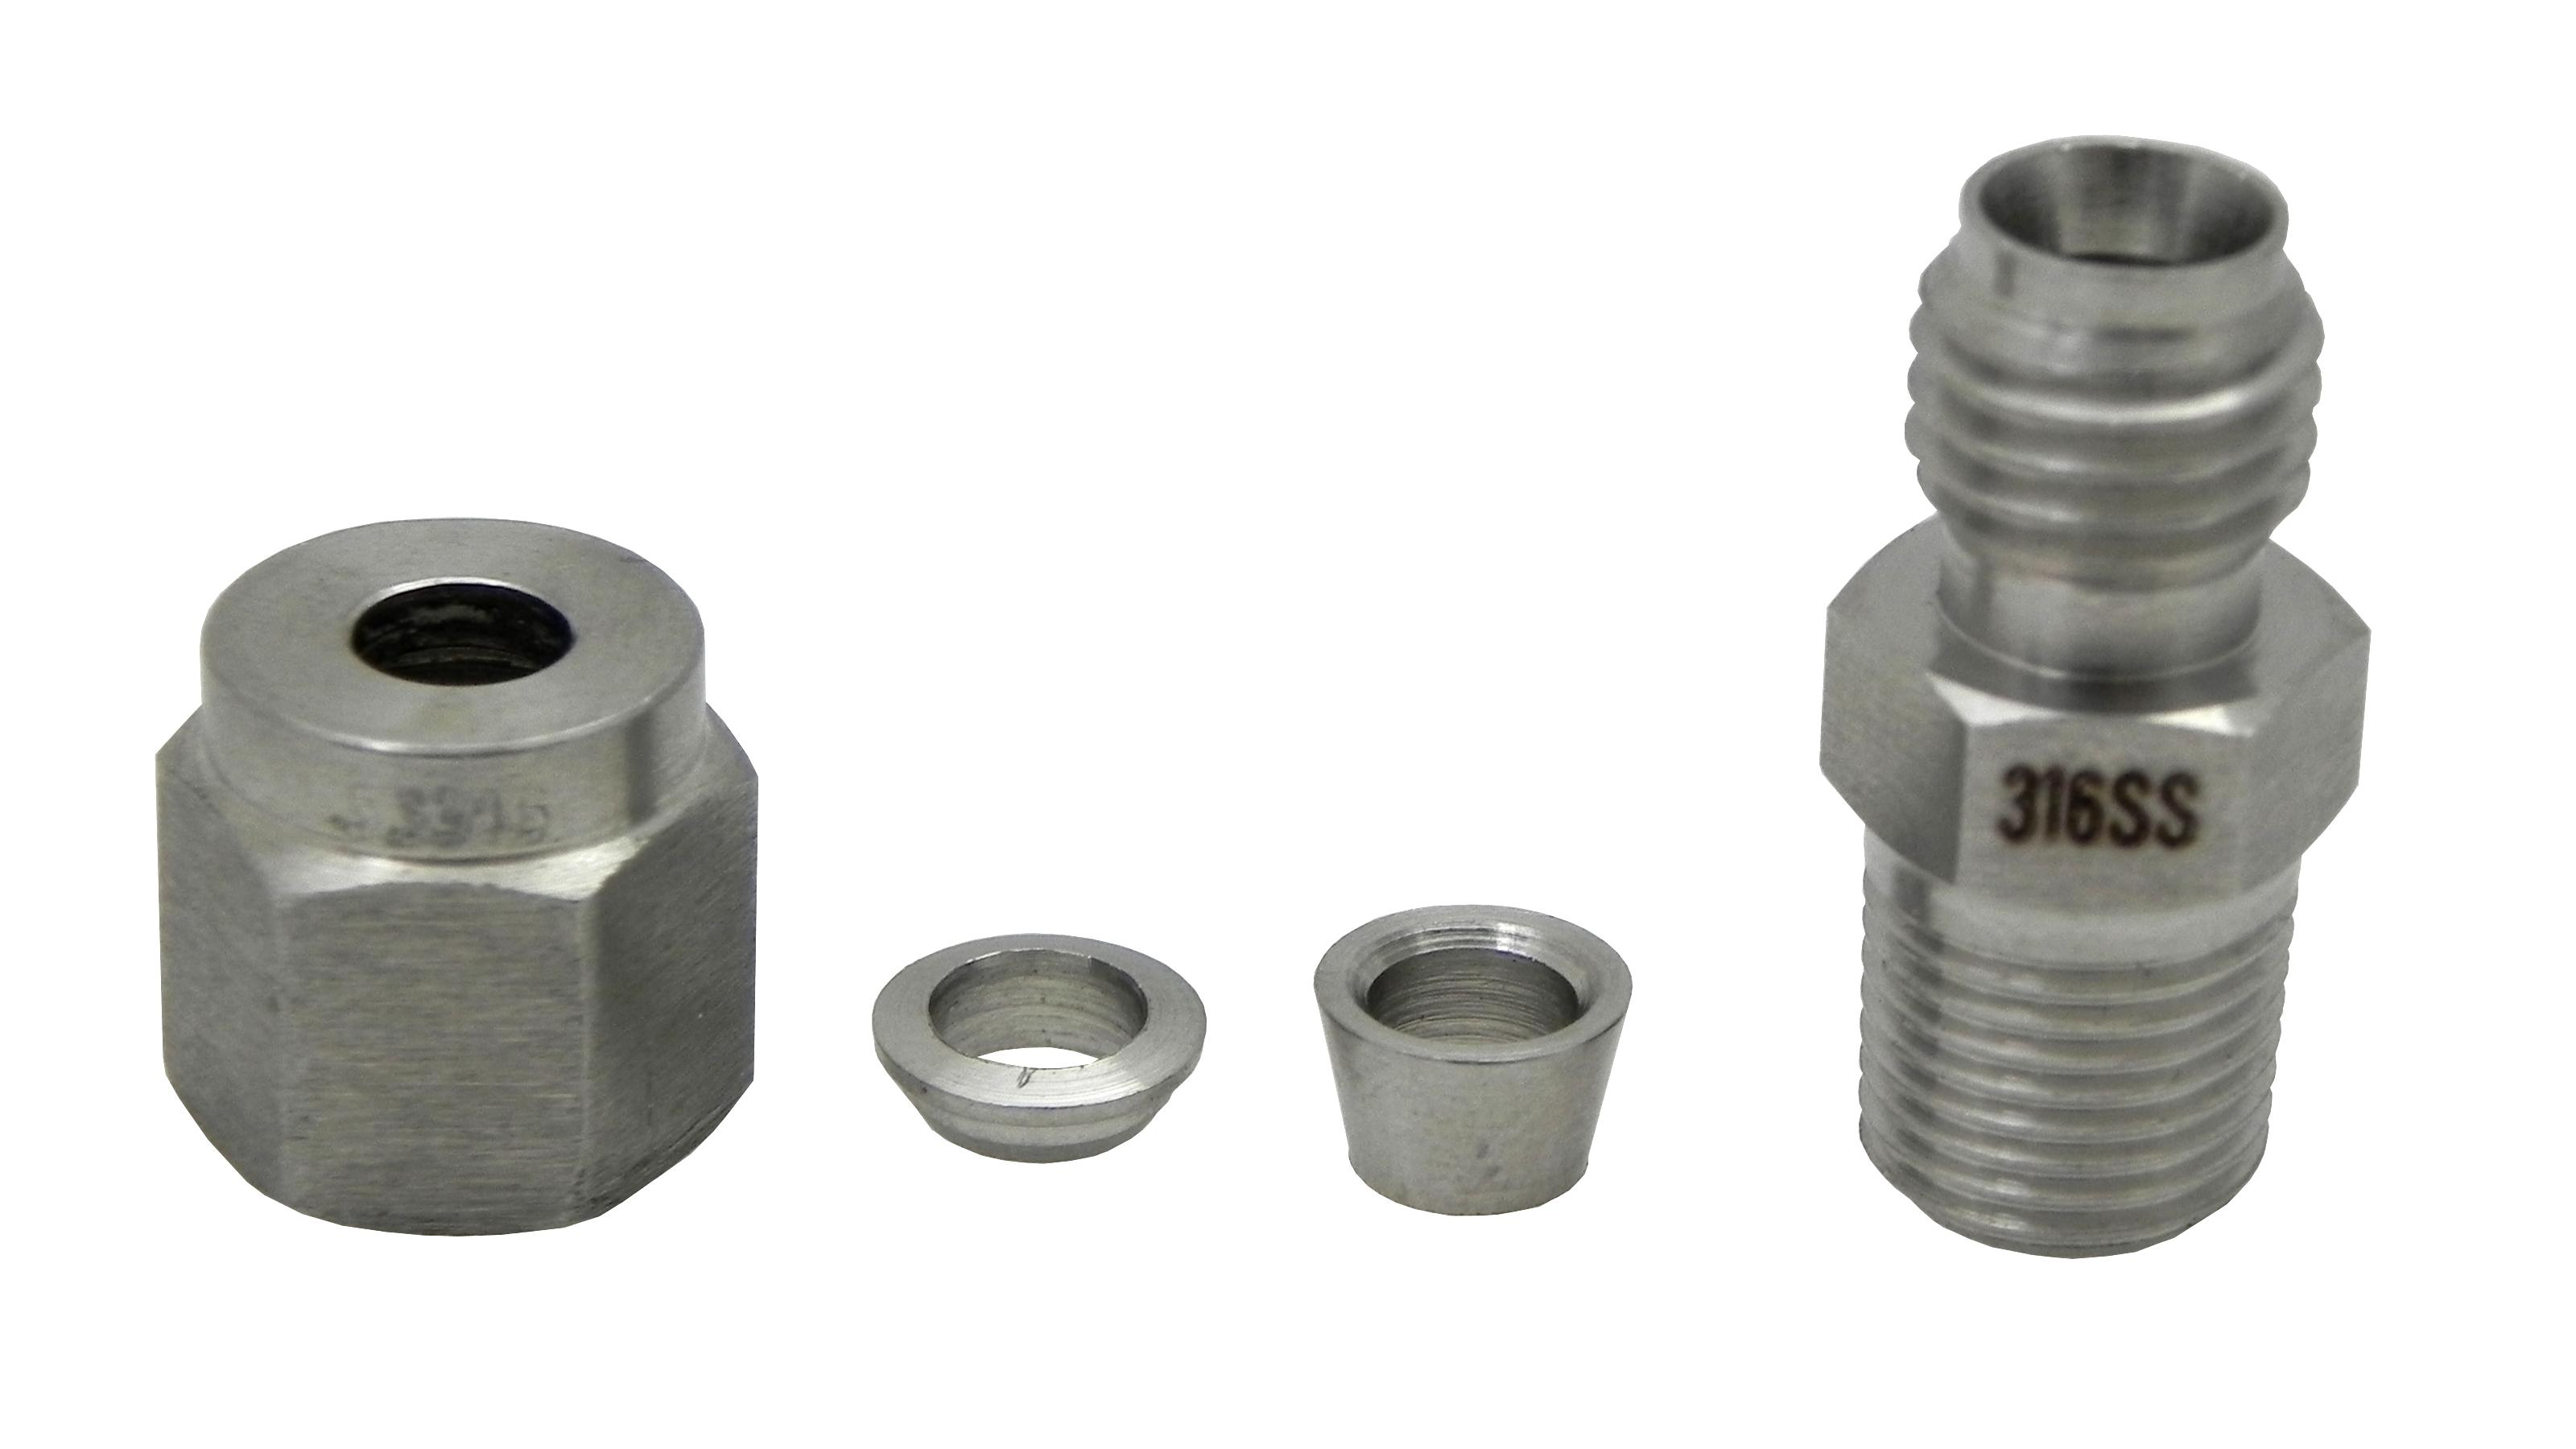 Thermocouple compression fitting adapter quot npt thread